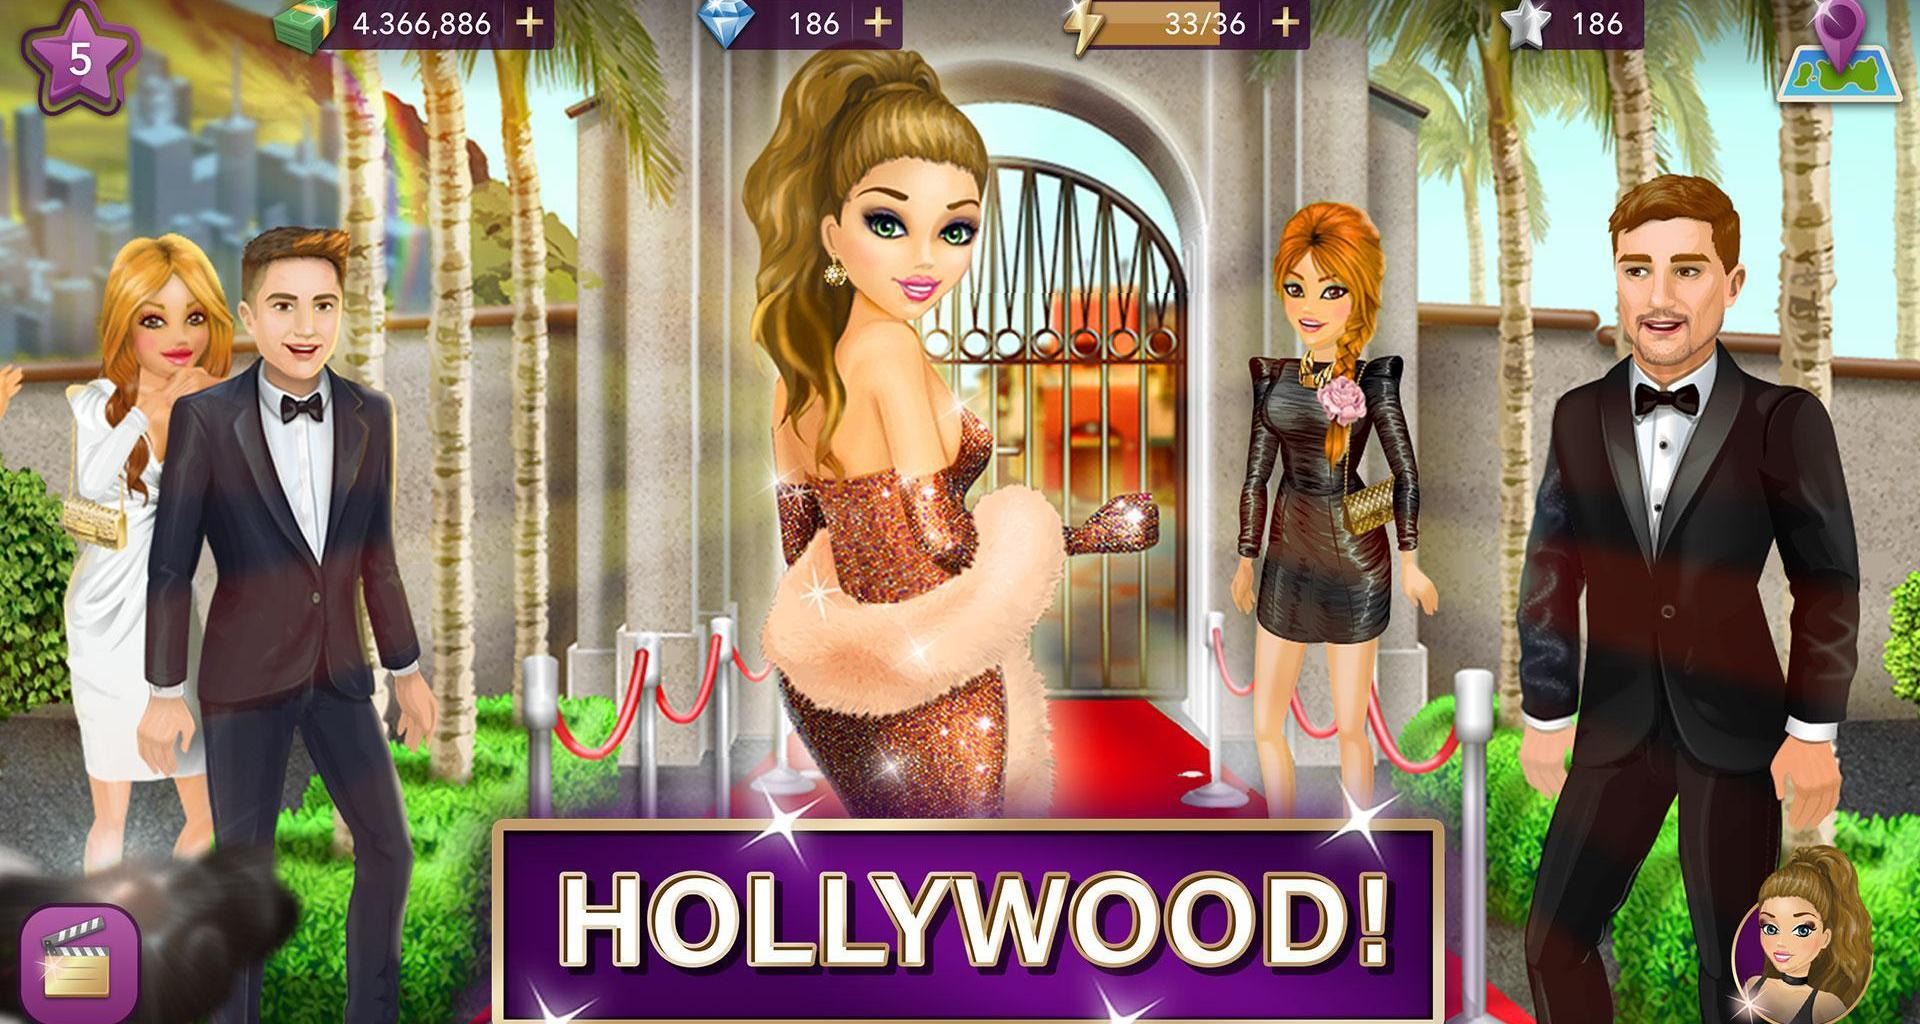 screen 0 - Hollywood Story Mod Apk V10.3.2 (Free Shopping/Unlimited Money)